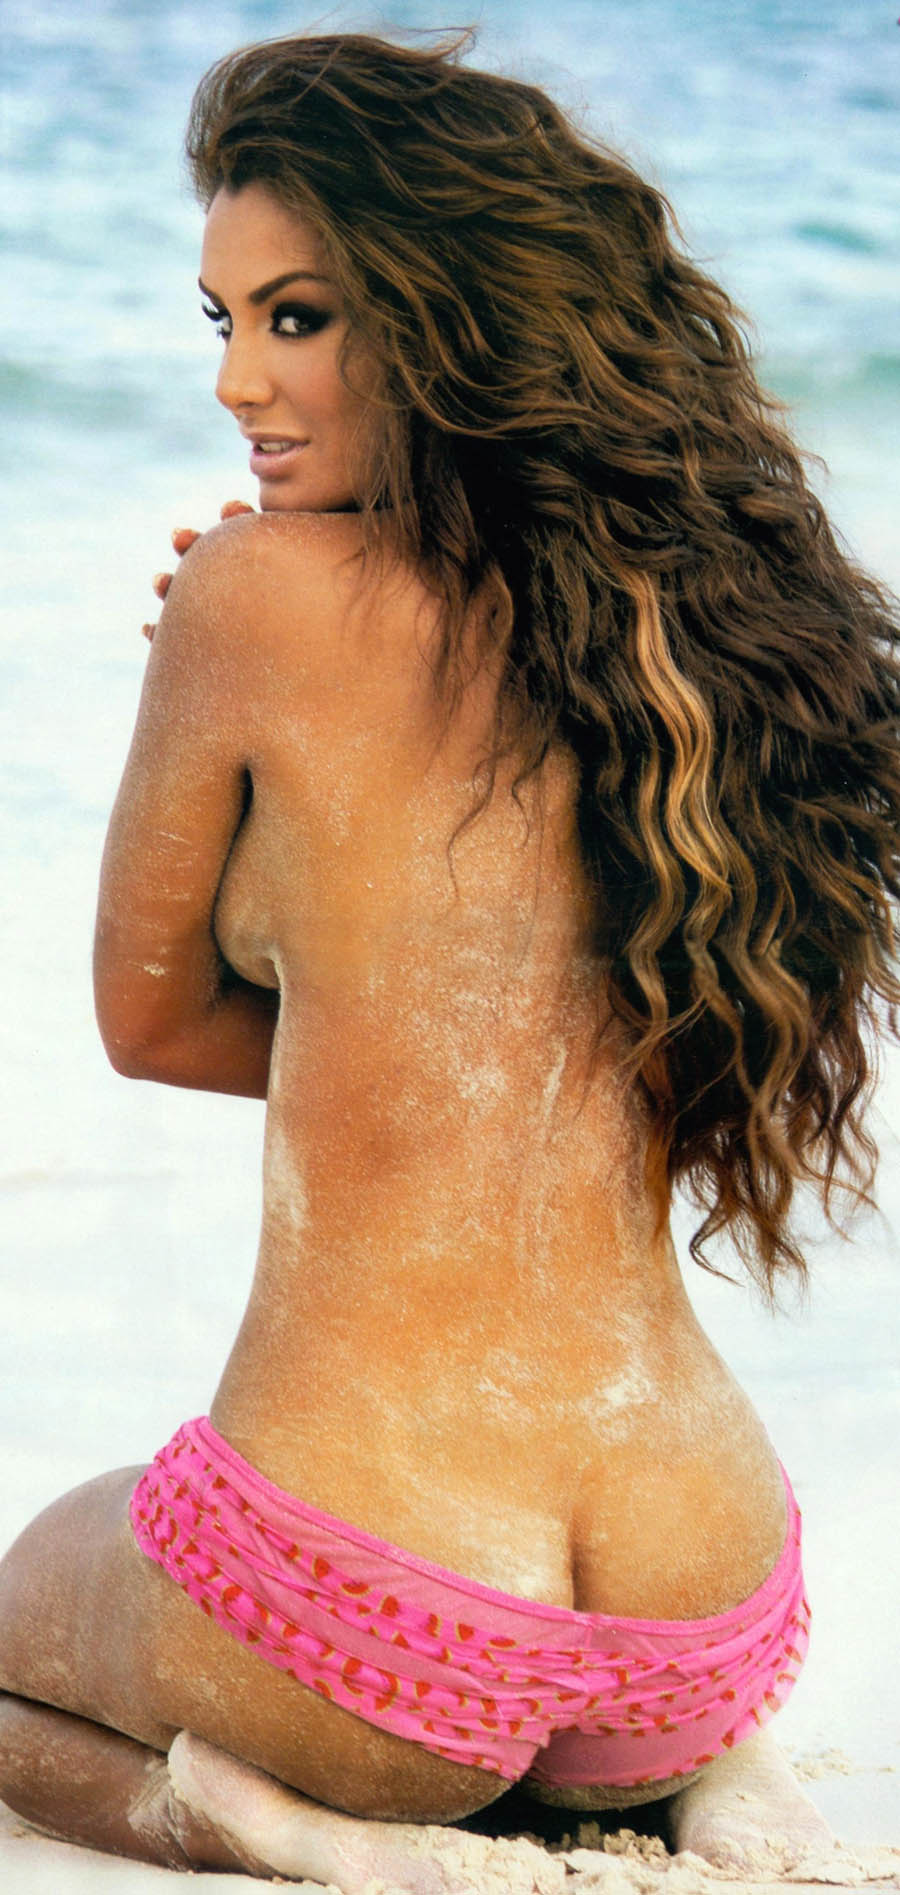 Ninel Conde Pictures Collection Are Hot